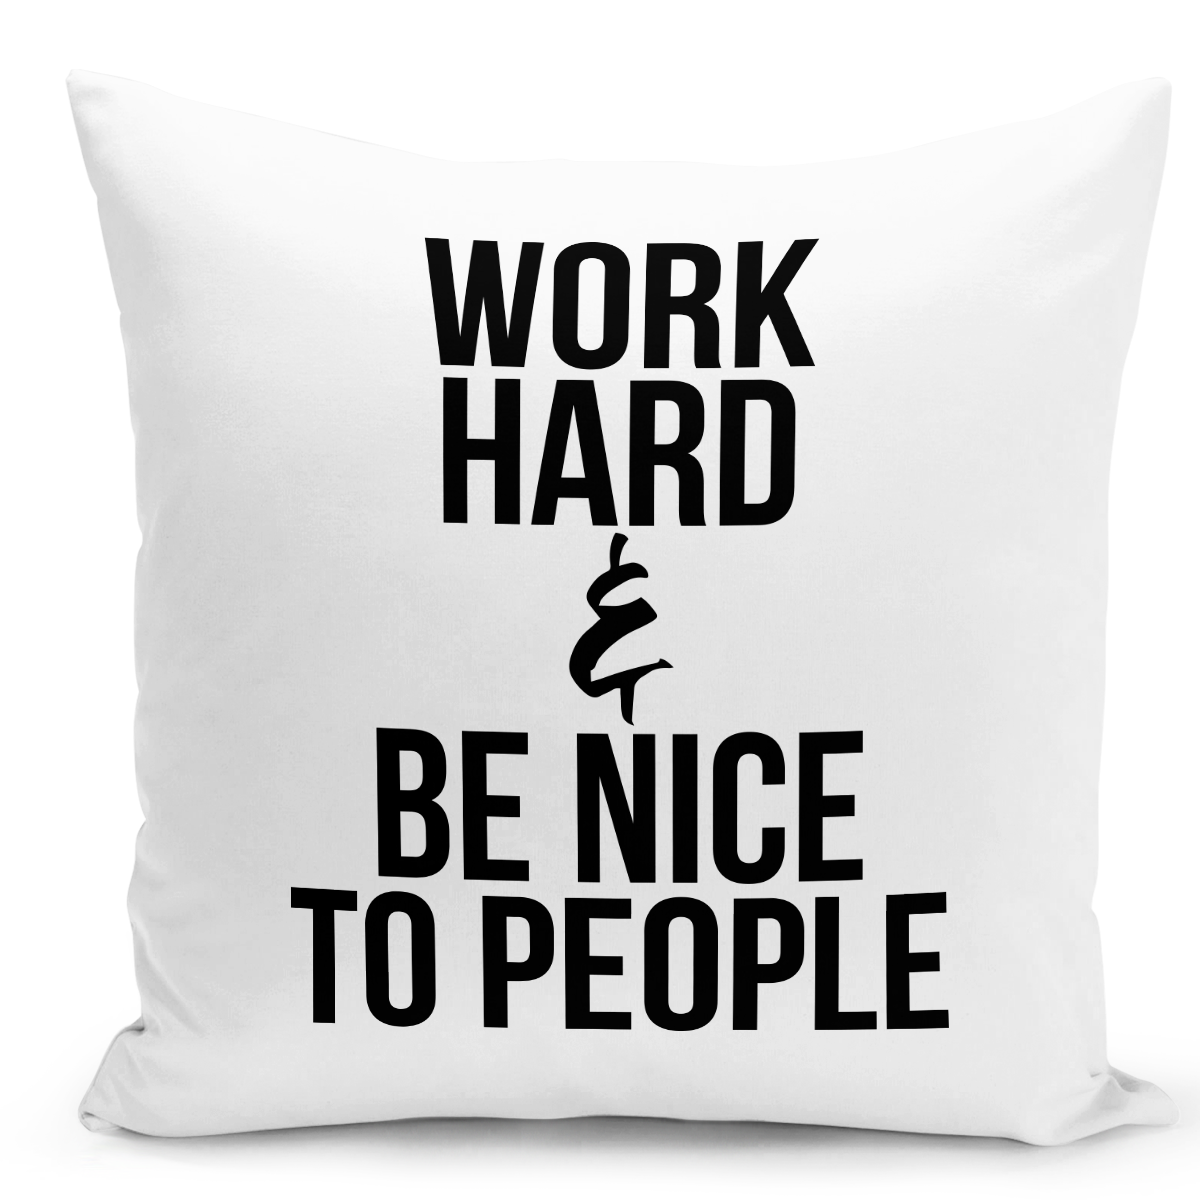 White-Throw-Pillow-Work-Hard-Pillow-Be-Nice-To-People---Durable-White-16-x-16-inch-Square-Home-Accent-Pillow-Sofa-Cushion-